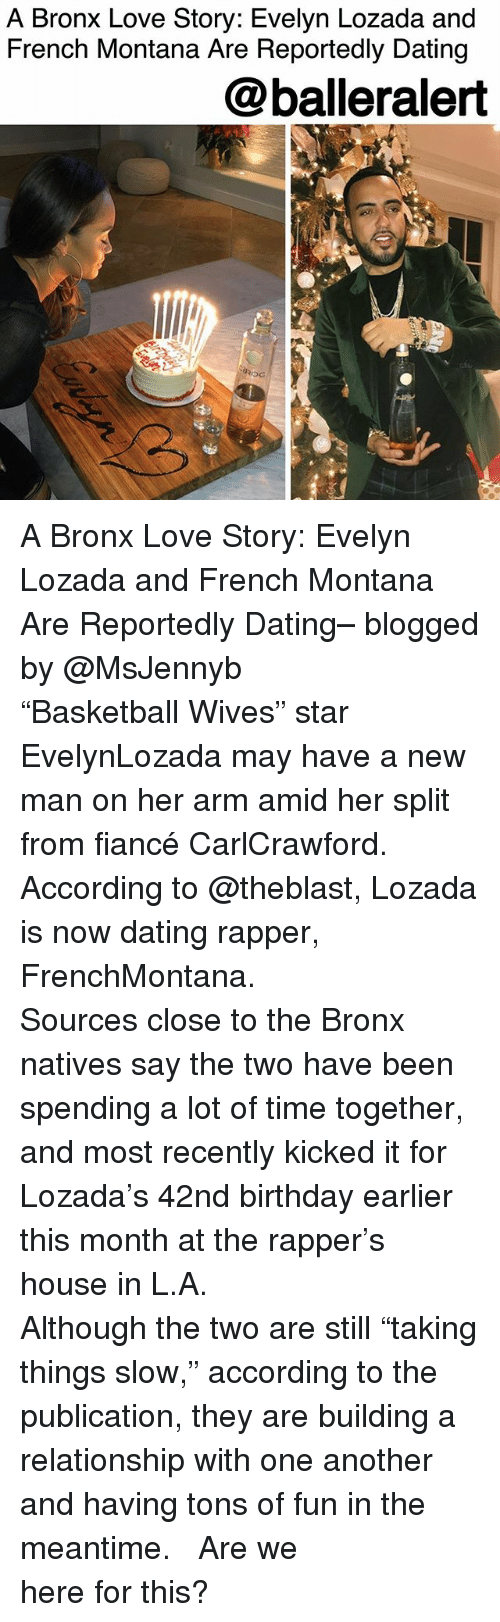 """French Montana: A Bronx Love Story: Evelyn Lozada and  French Montana Are Reportedly Dating  @balleralert  ROC  Roc A Bronx Love Story: Evelyn Lozada and French Montana Are Reportedly Dating– blogged by @MsJennyb ⠀⠀⠀⠀⠀⠀⠀ ⠀⠀⠀⠀⠀⠀⠀ """"Basketball Wives"""" star EvelynLozada may have a new man on her arm amid her split from fiancé CarlCrawford. According to @theblast, Lozada is now dating rapper, FrenchMontana. ⠀⠀⠀⠀⠀⠀⠀ ⠀⠀⠀⠀⠀⠀⠀ Sources close to the Bronx natives say the two have been spending a lot of time together, and most recently kicked it for Lozada's 42nd birthday earlier this month at the rapper's house in L.A. ⠀⠀⠀⠀⠀⠀⠀ ⠀⠀⠀⠀⠀⠀⠀ Although the two are still """"taking things slow,"""" according to the publication, they are building a relationship with one another and having tons of fun in the meantime. ⠀⠀⠀⠀⠀⠀⠀ ⠀⠀⠀⠀⠀⠀⠀ Are we here for this?"""